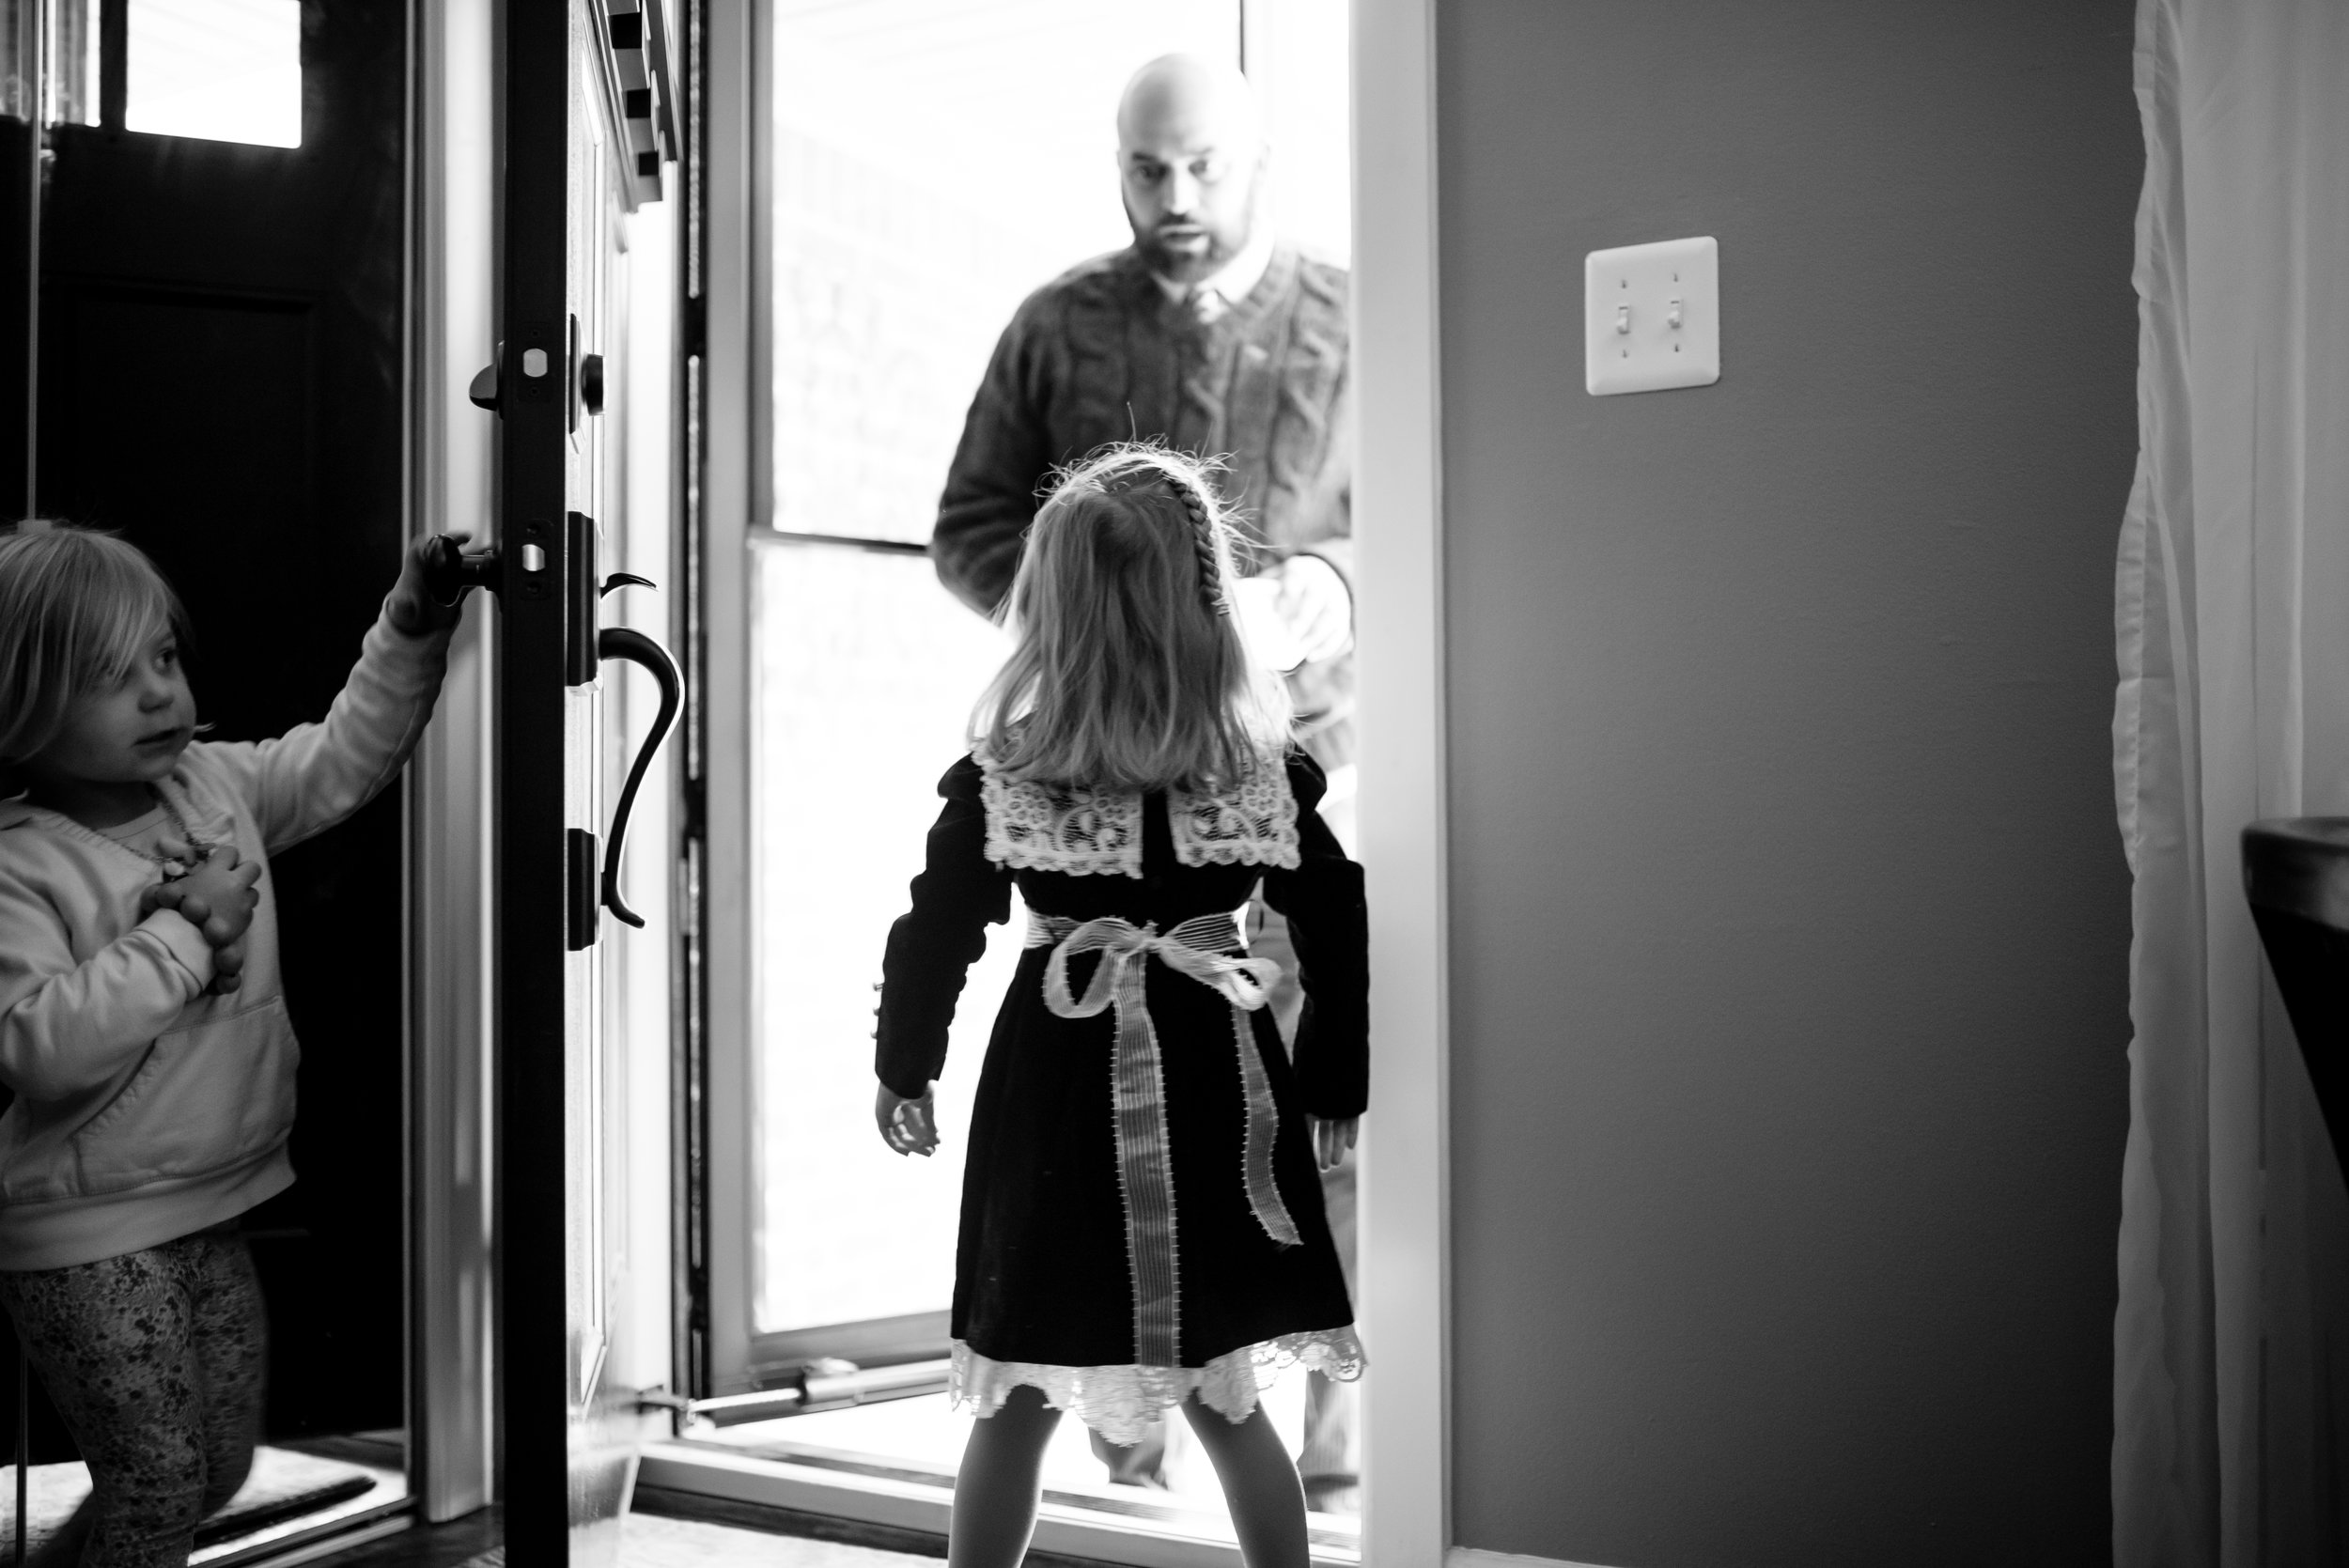 Fathers looks in awe upon daughter in doorway